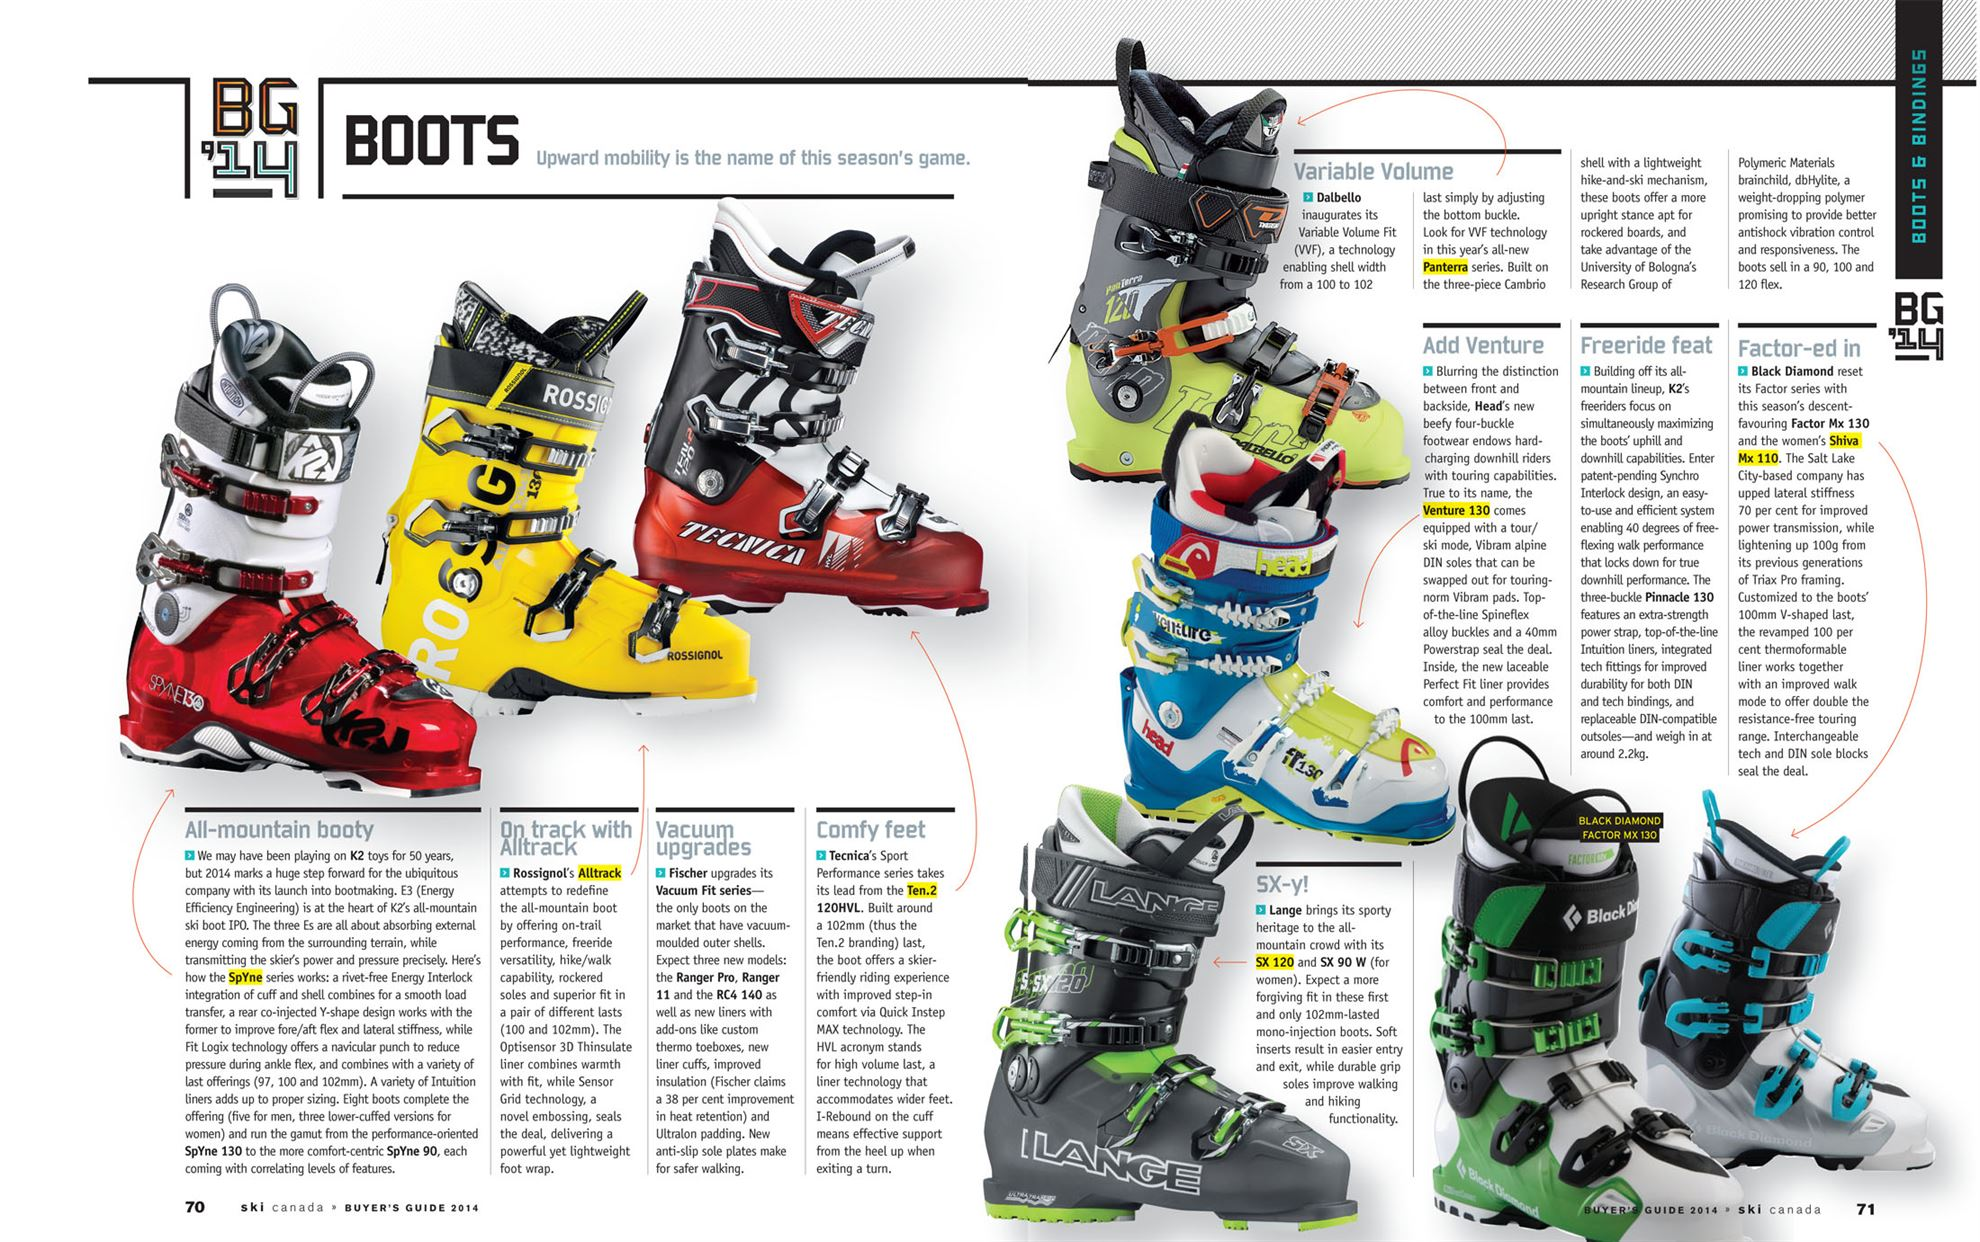 salomon x pro 130 ski boot 2013 14 | Becky (Chain Reaction